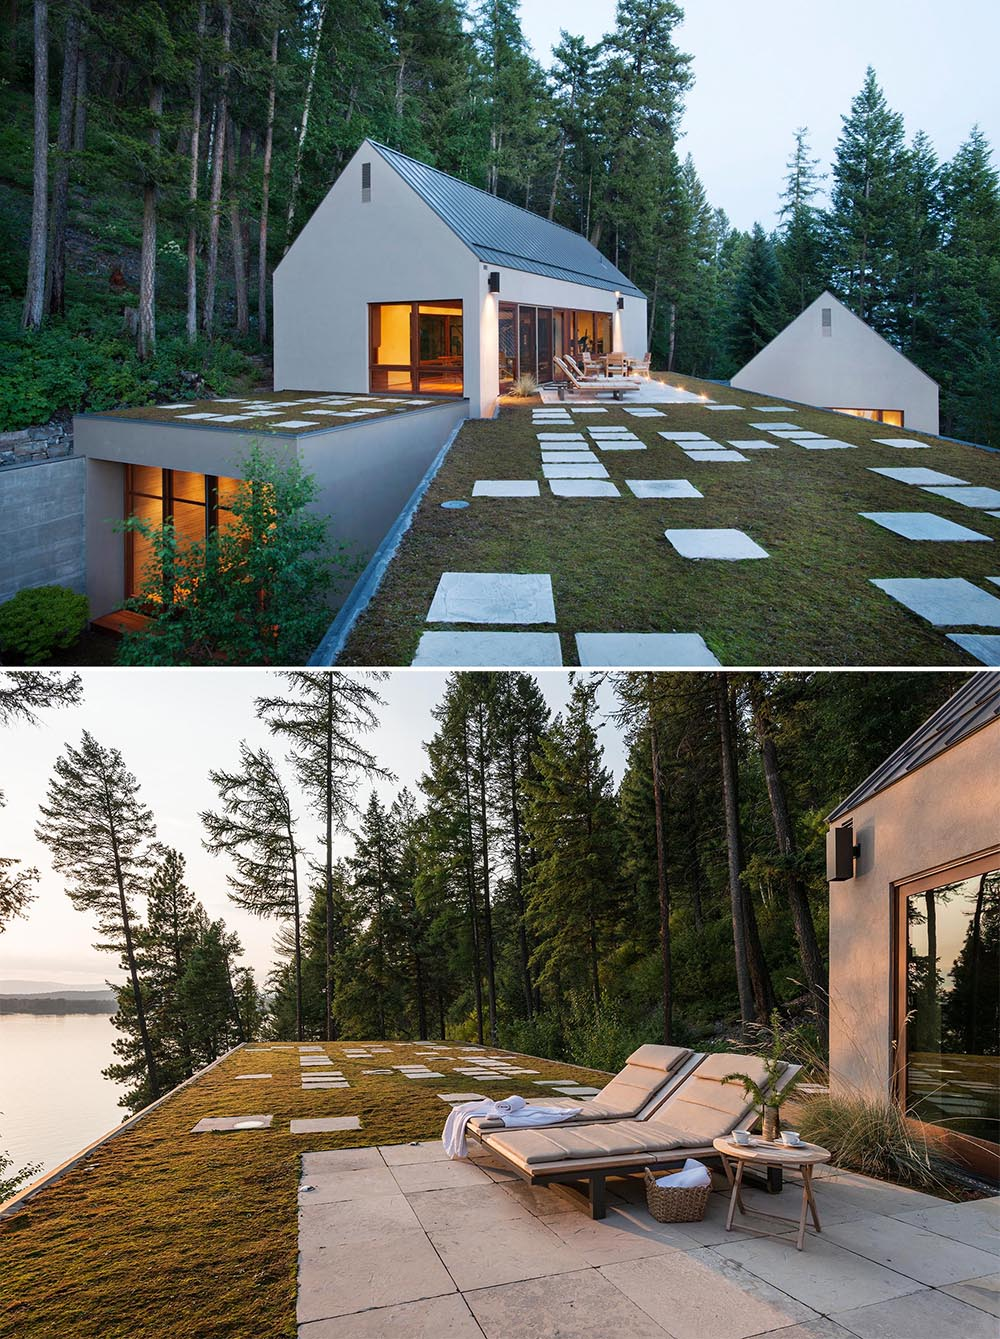 Helping blend these small buildings into their surroundings are green roof elements that host a moss garden punctuated by limestone pavers.